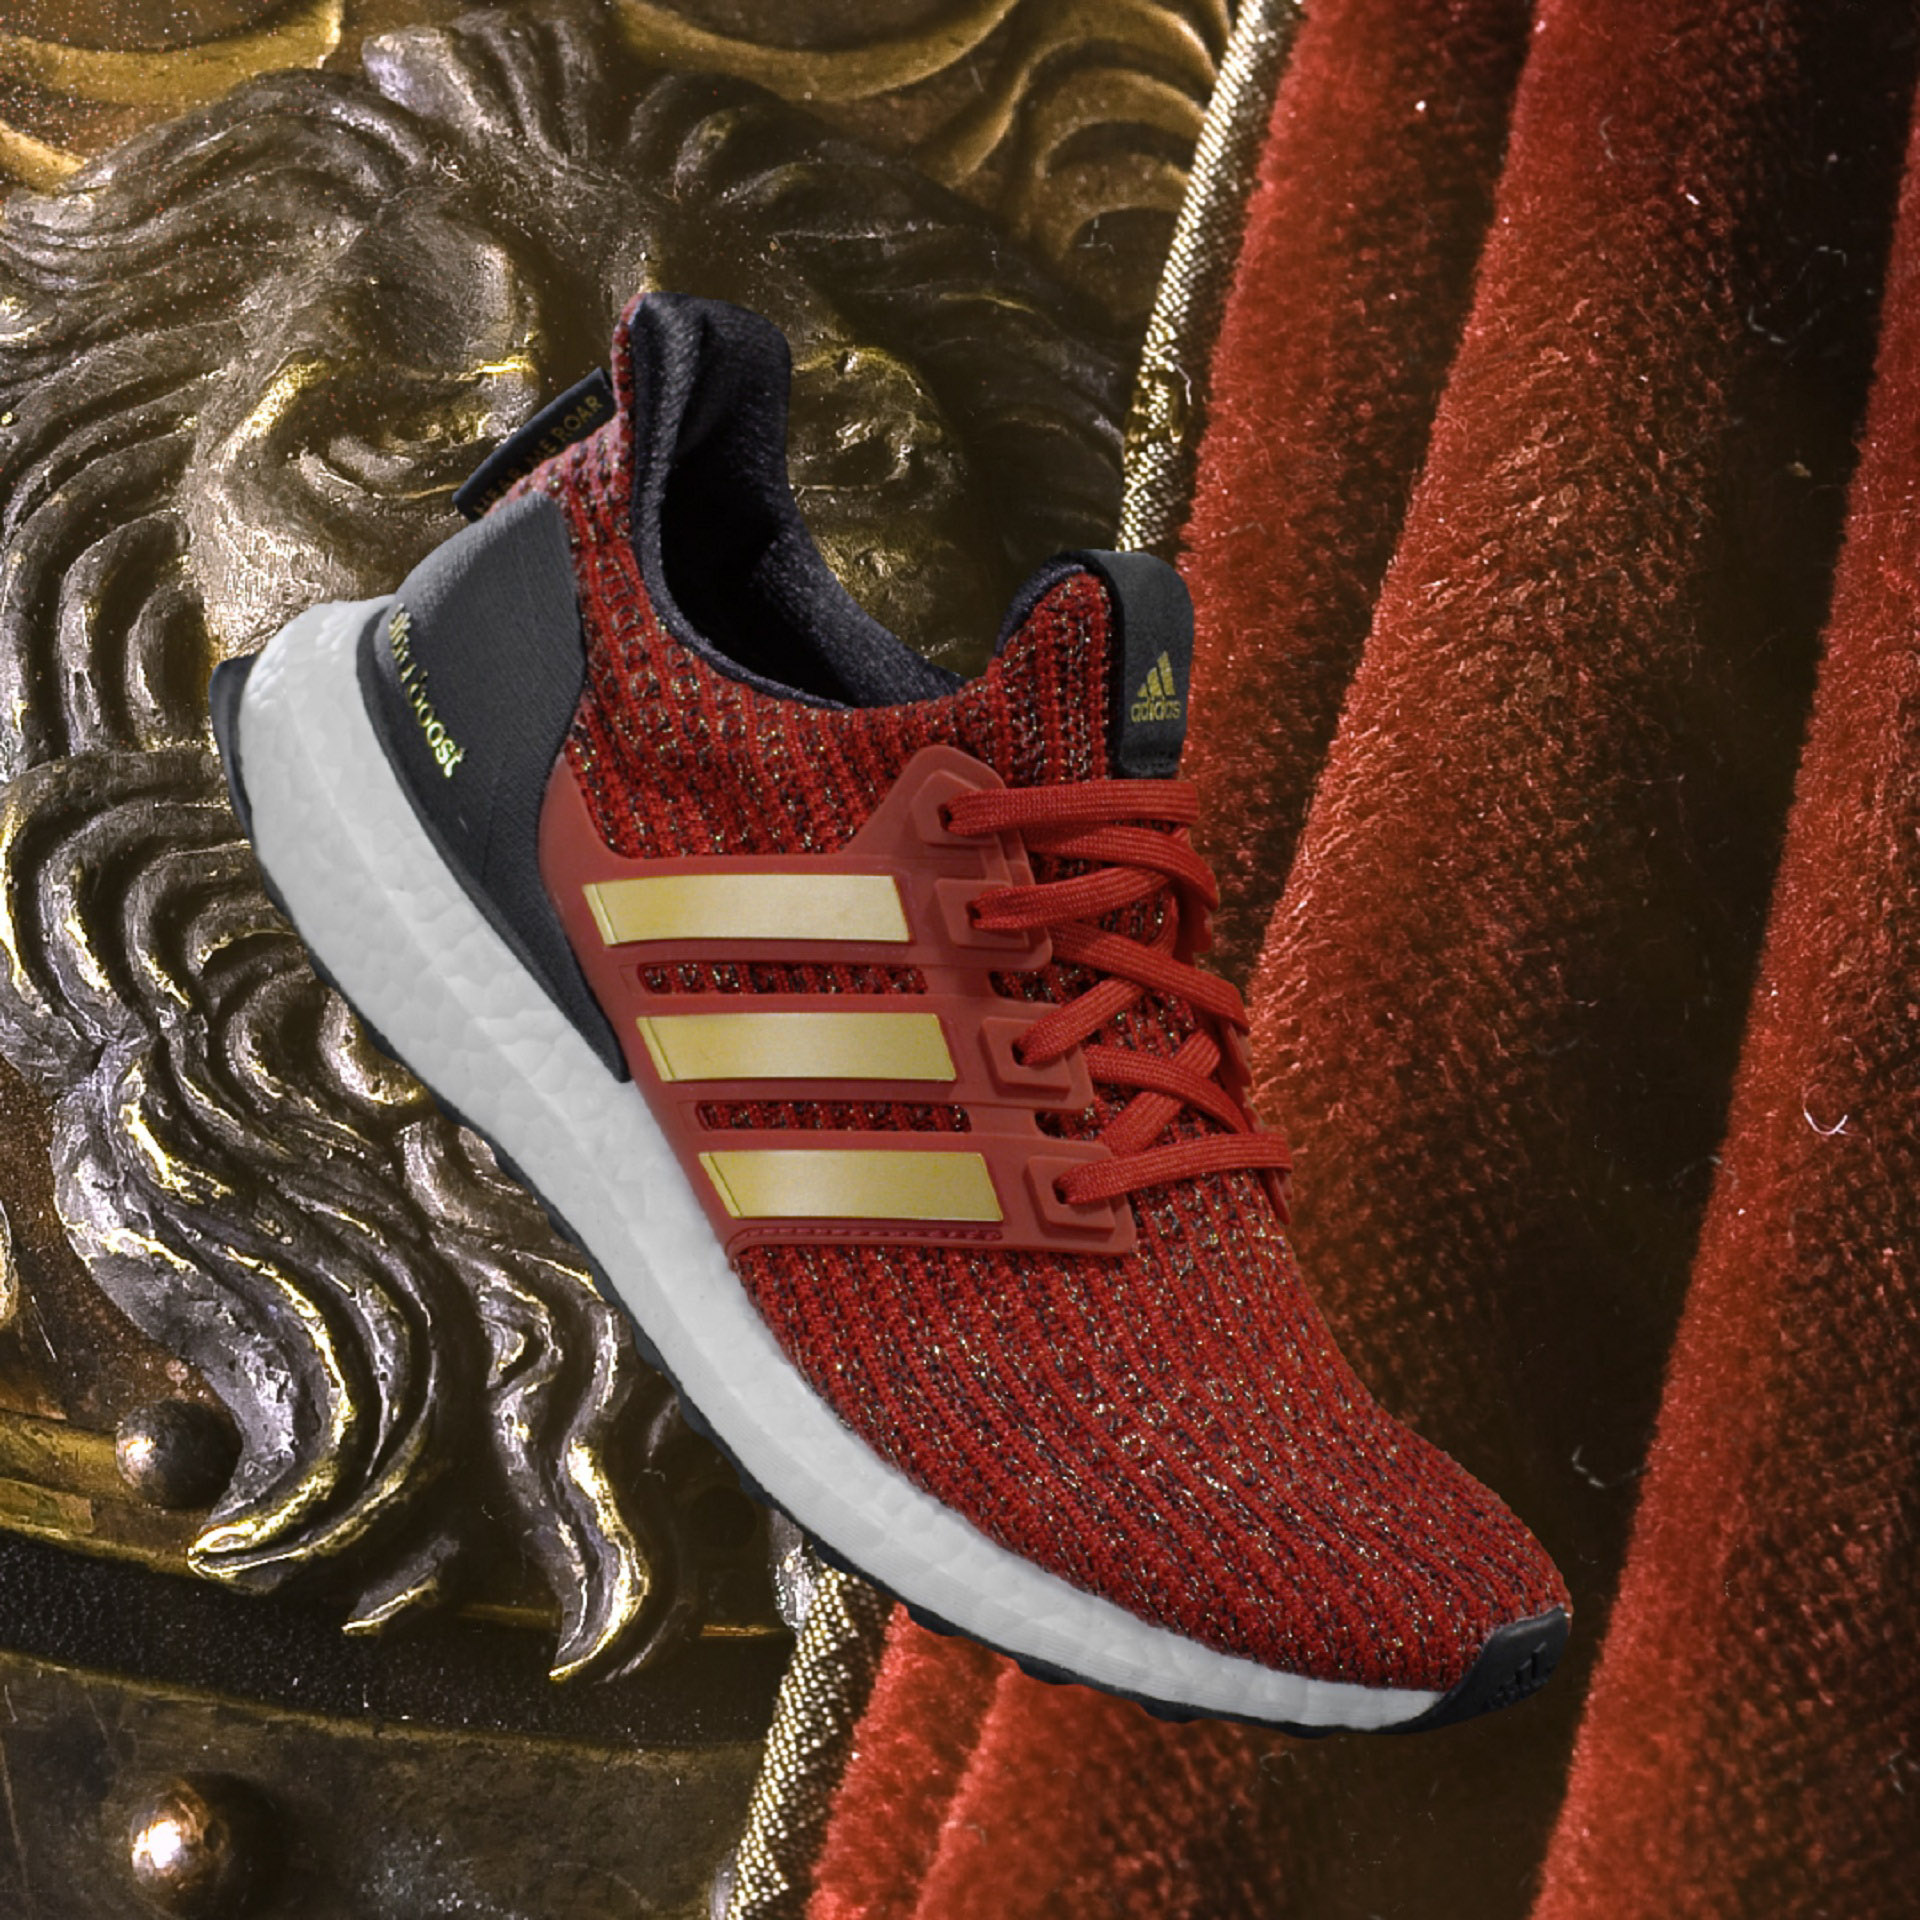 Game of Thrones x adidas UltraBOOST 16